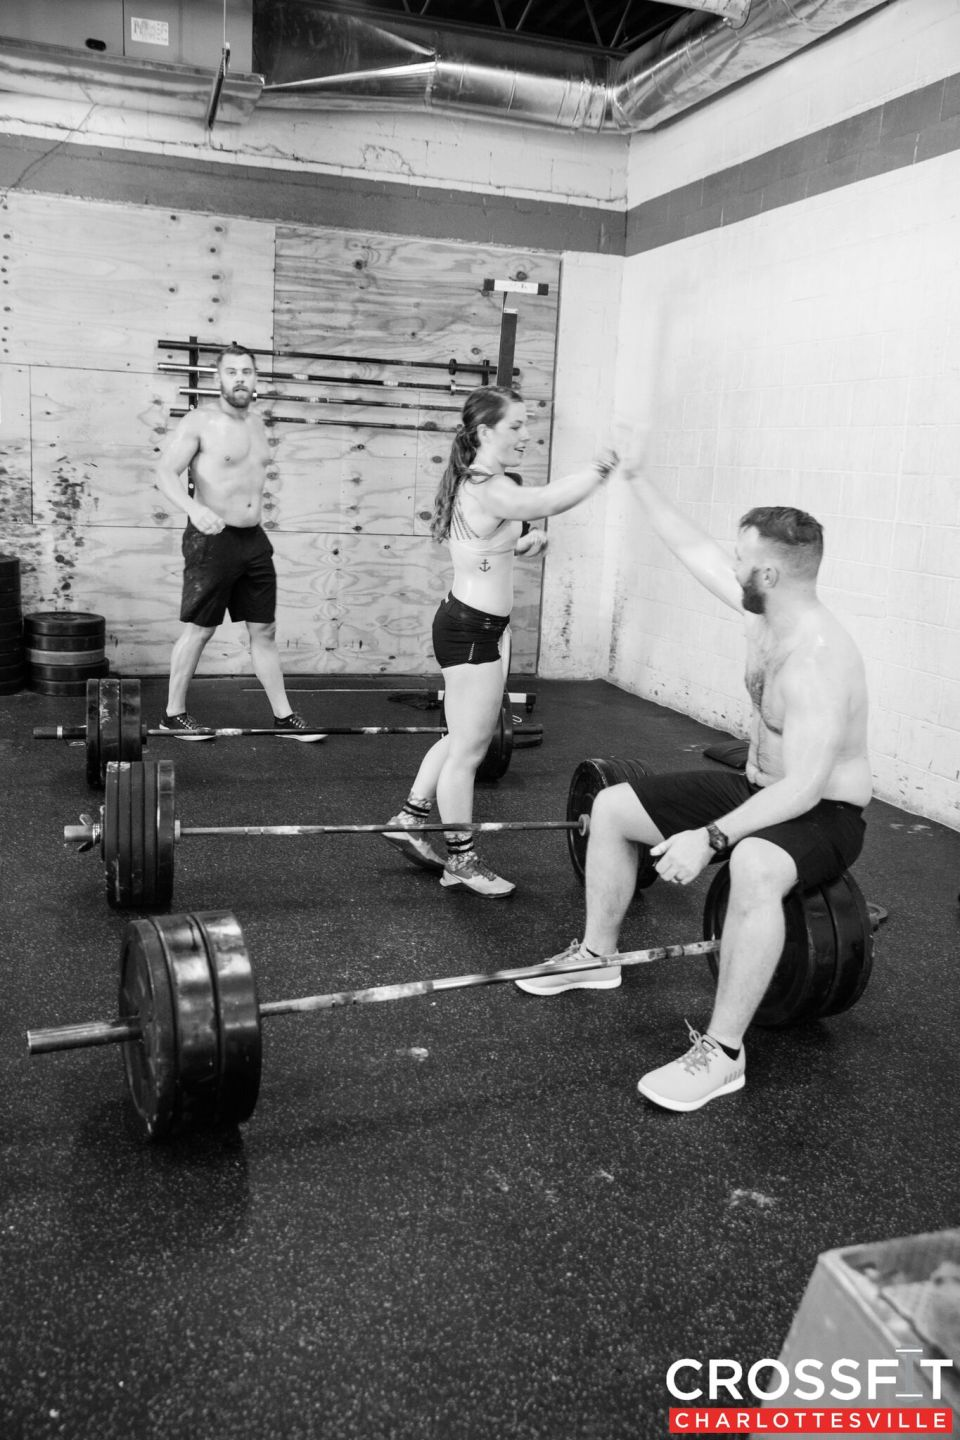 Crossfit Charlottesville_0080_preview.jpeg